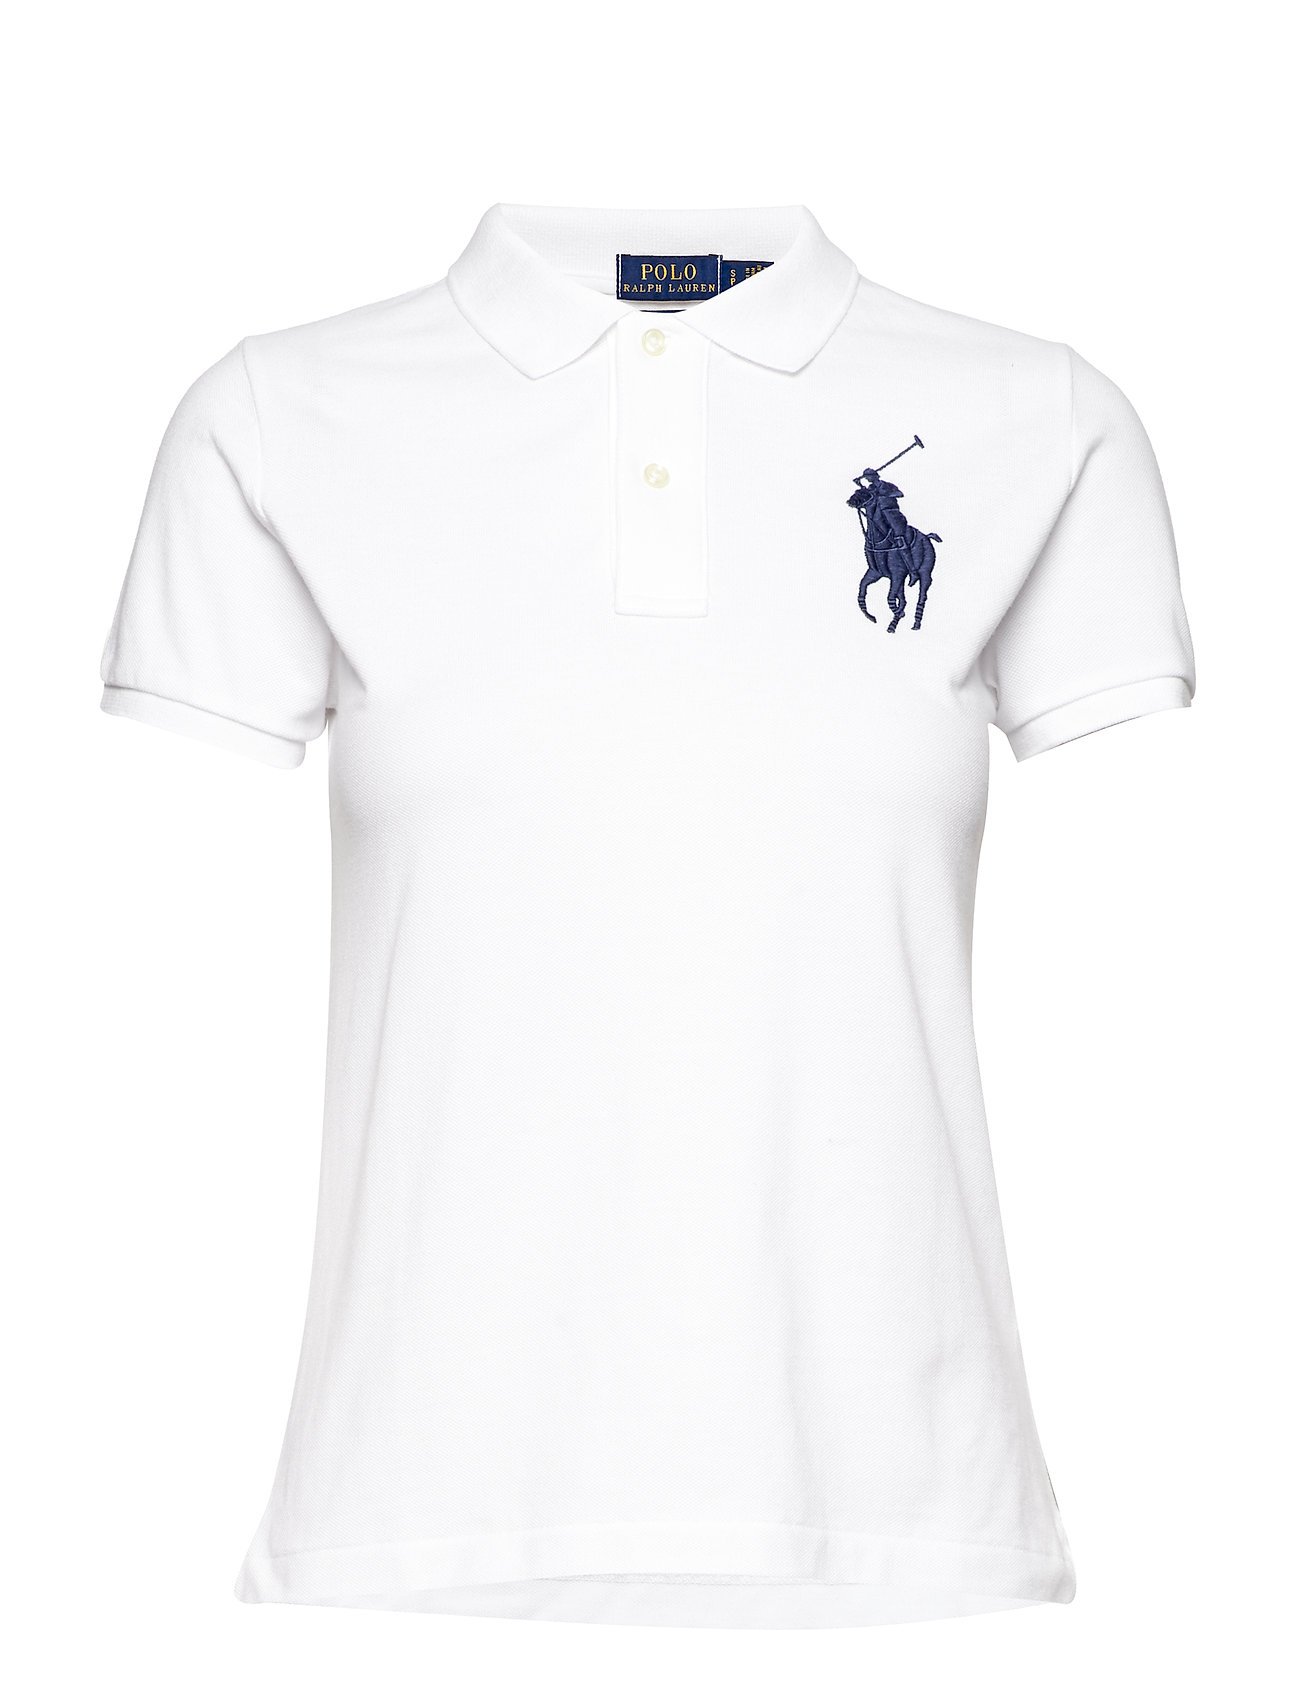 Polo Ralph Lauren Skinny-Fit Big Pony Polo Shirt - WHITE/NAVY PP